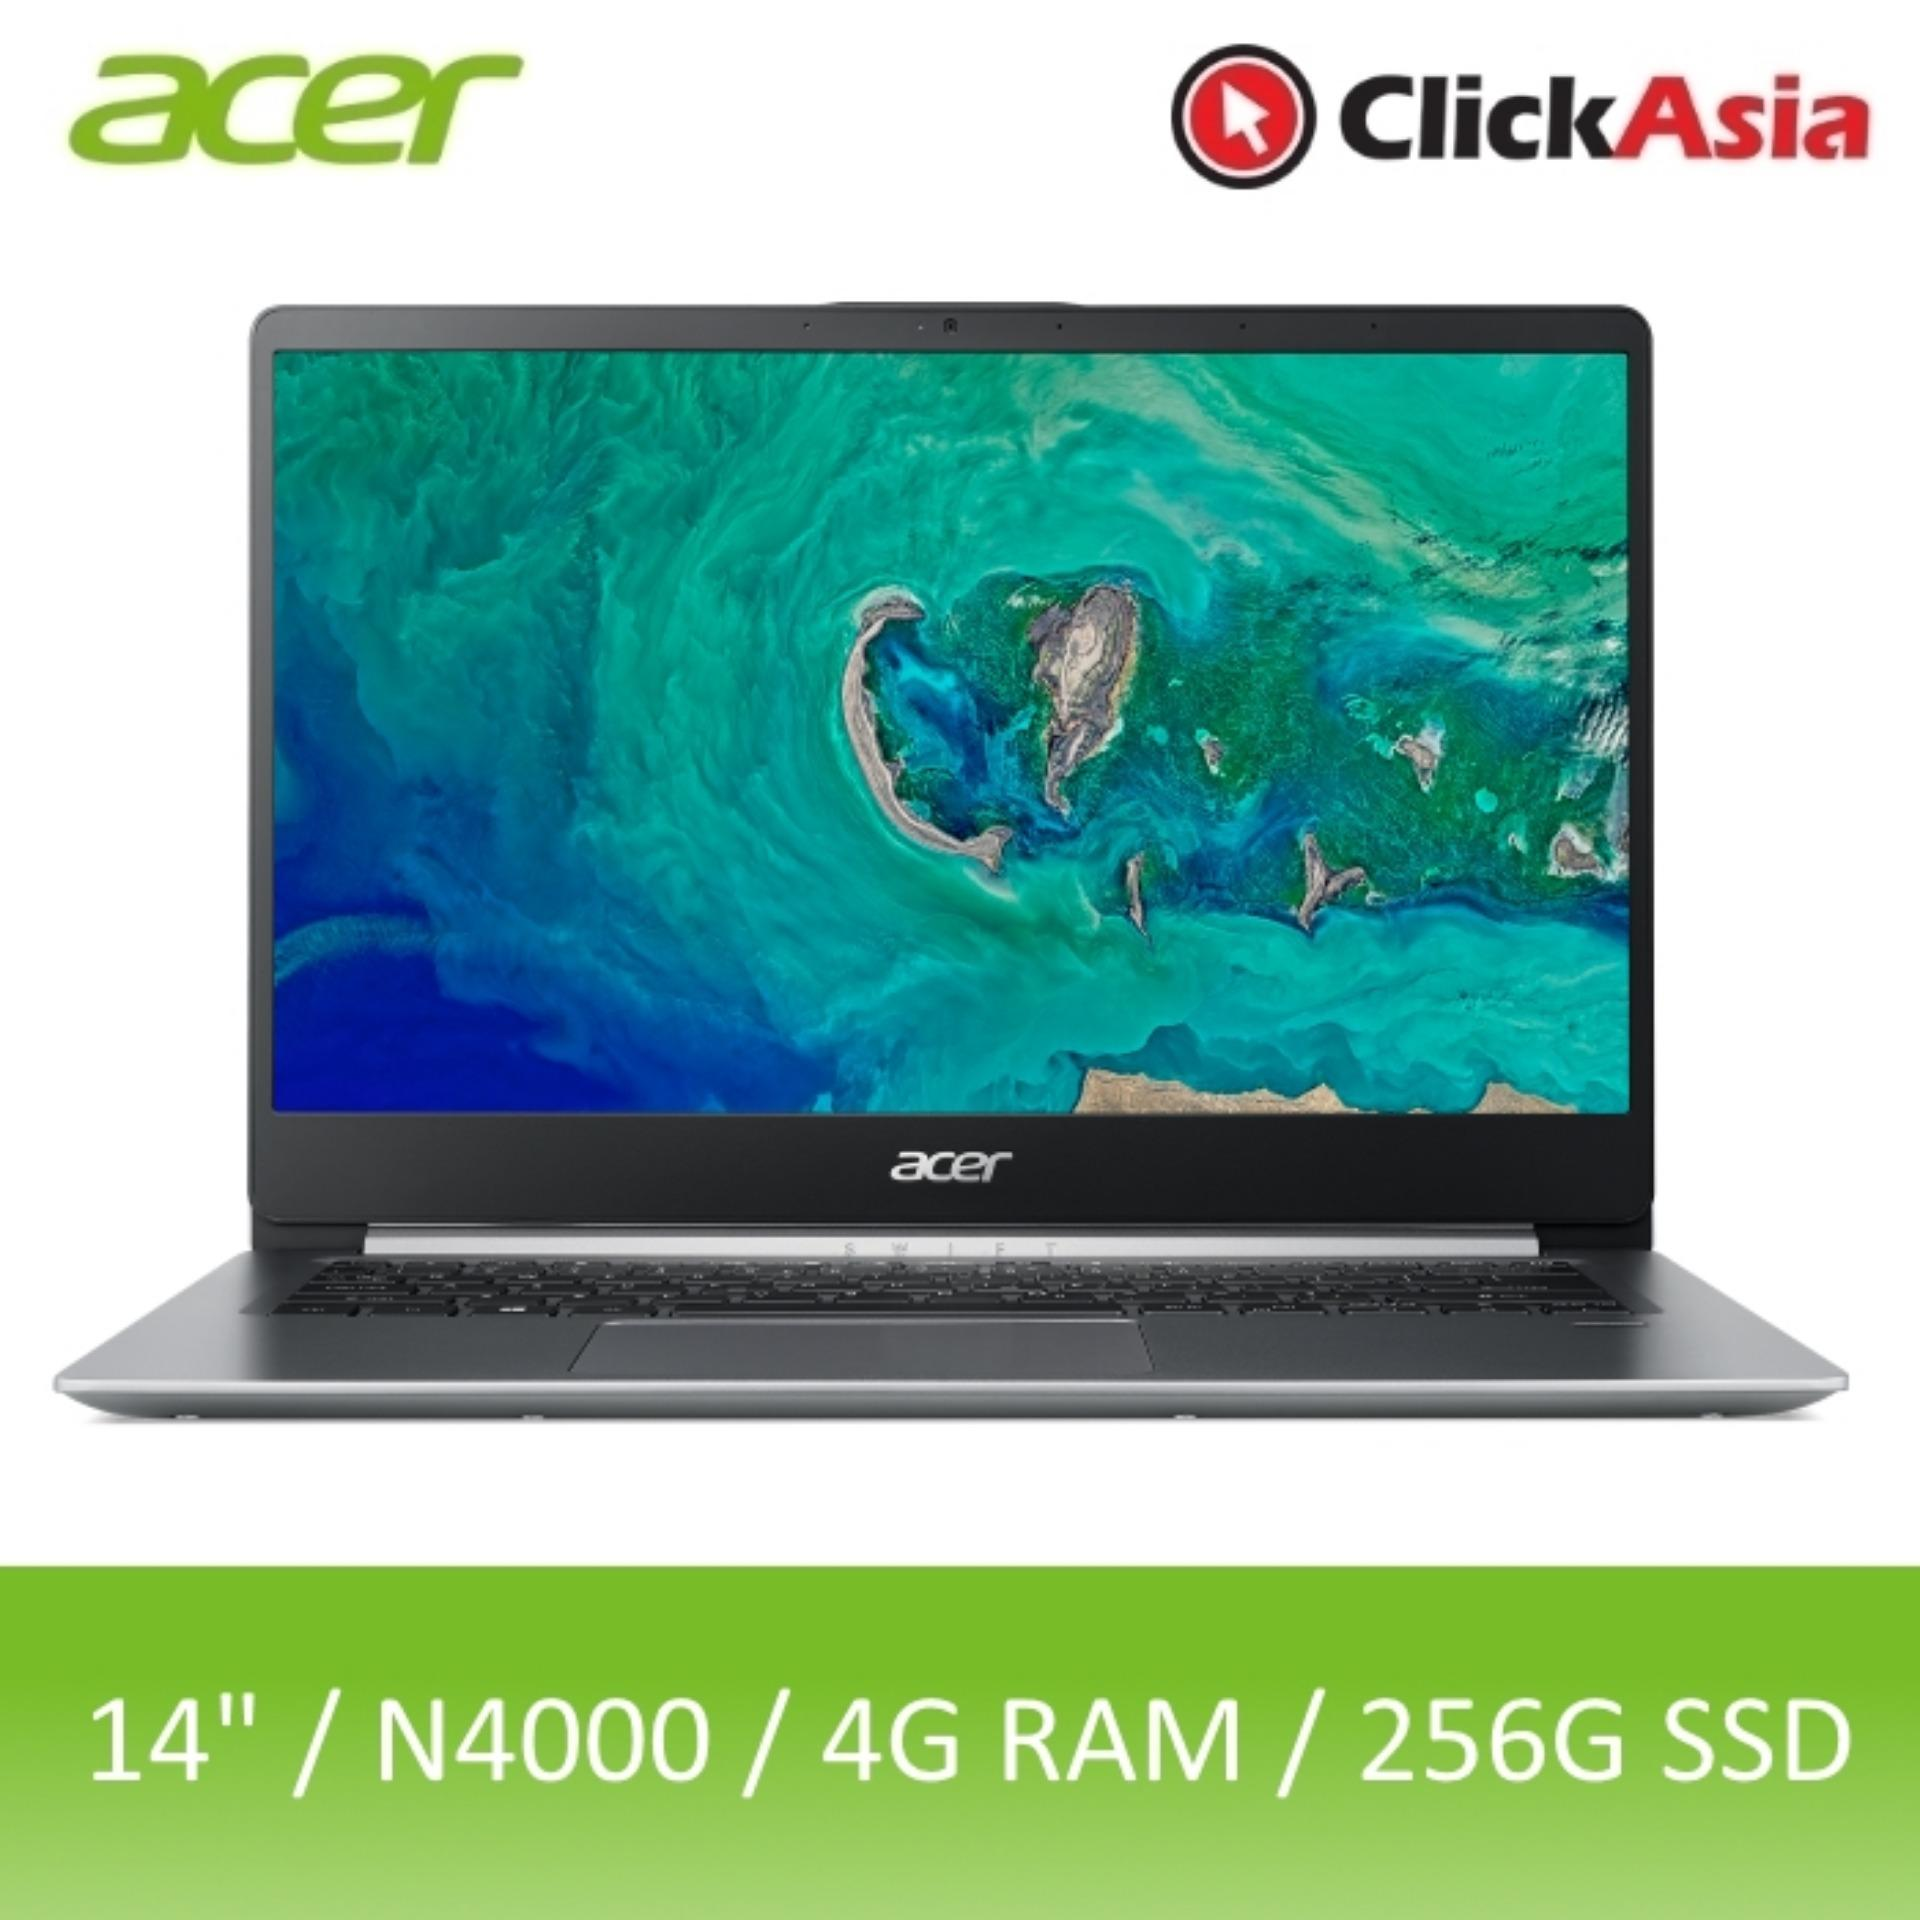 Acer Swift 1 (SF114-32-C3RB) 14-Inch IPS Narrow Border Thin and Light Laptop (Silver)